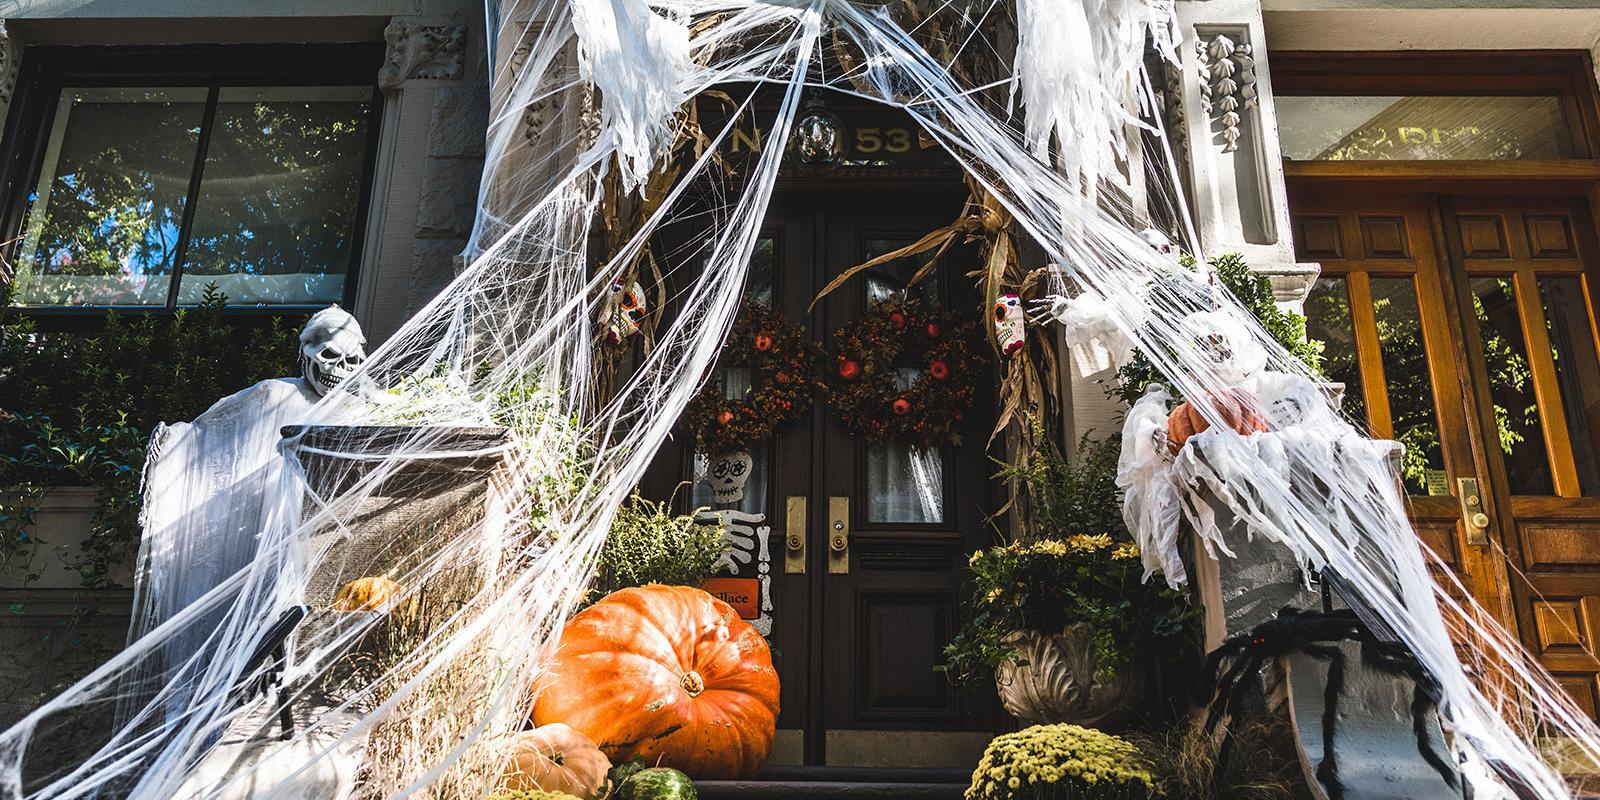 Halloween New York 2019.New York In October I Things To Do In Nyc October 2019 Edition